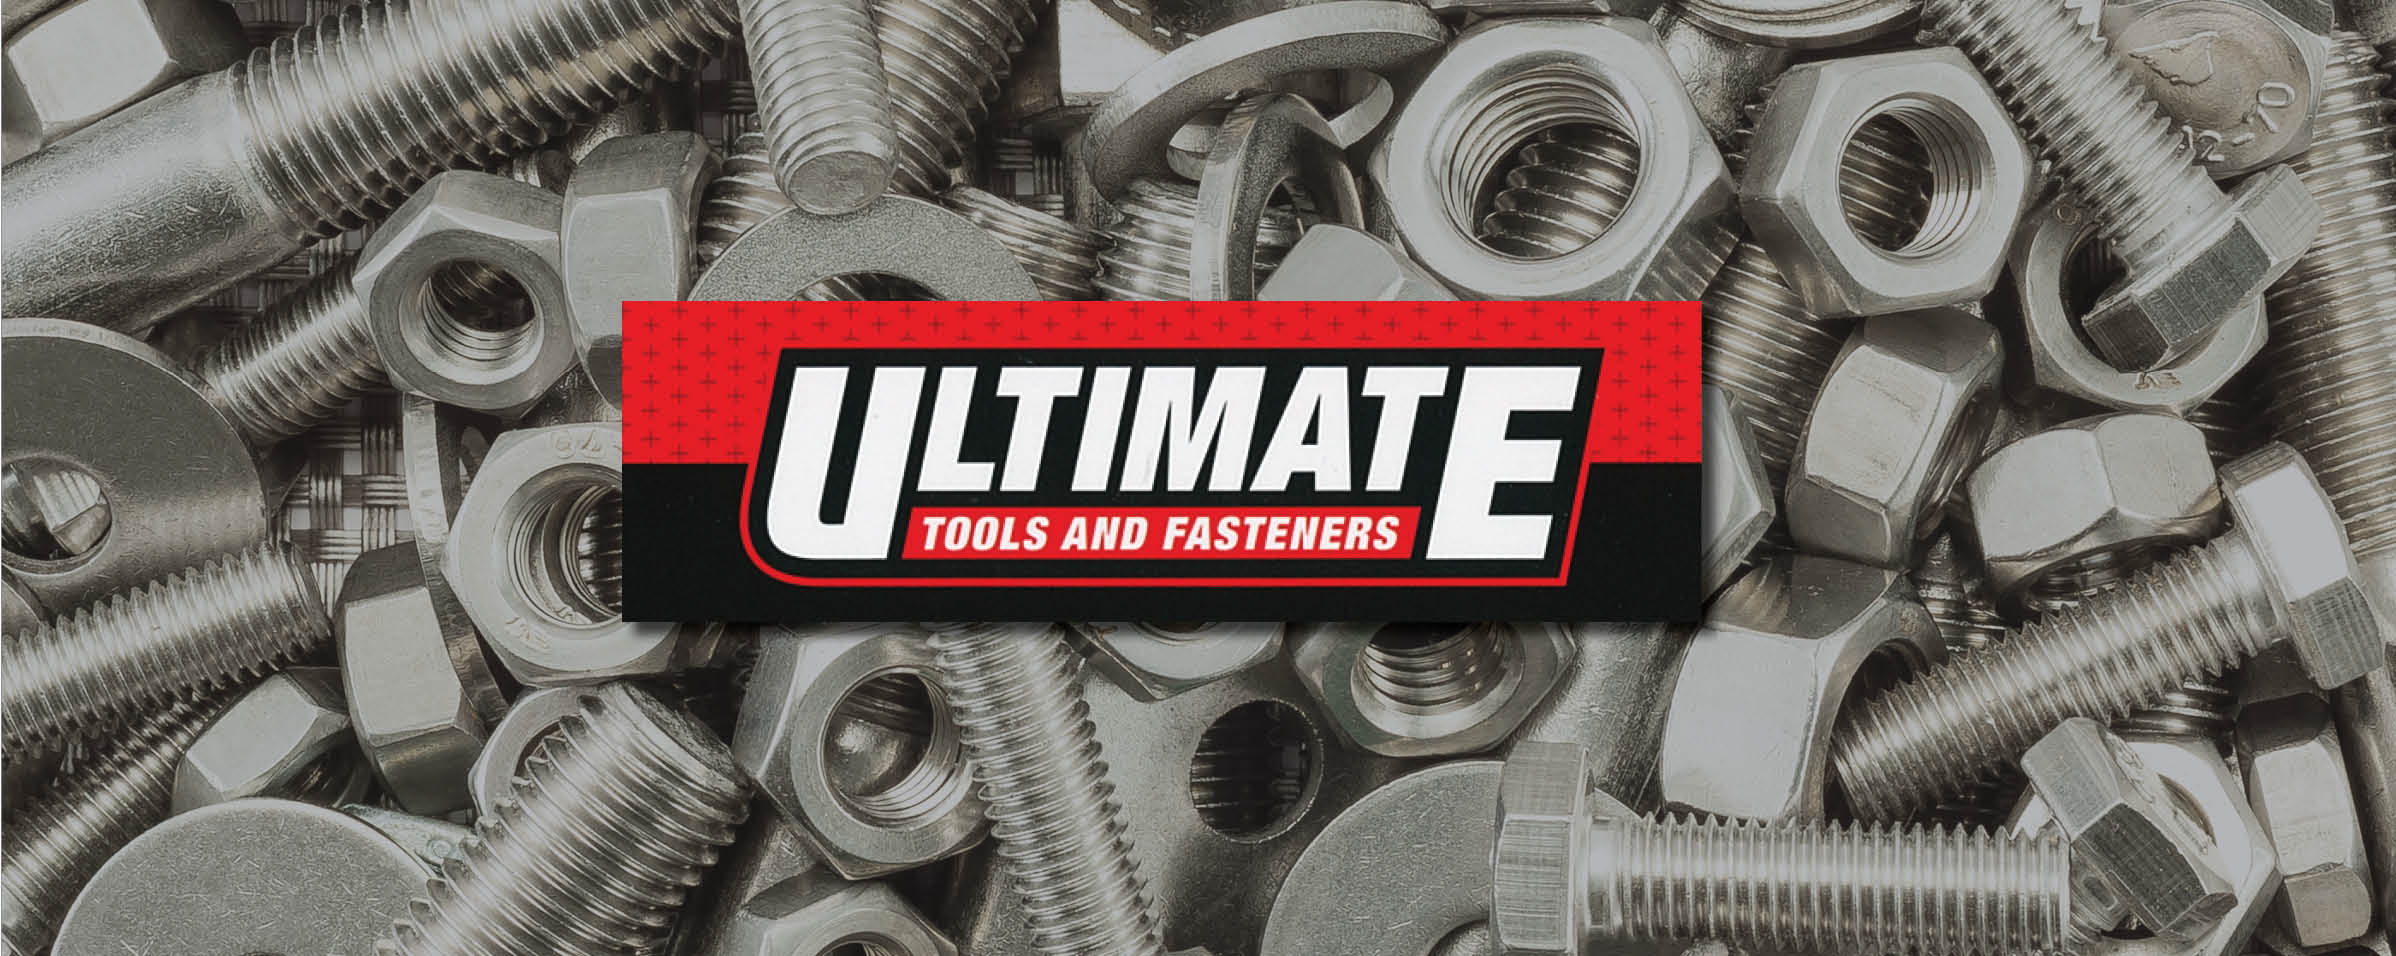 ultimatetools banner01